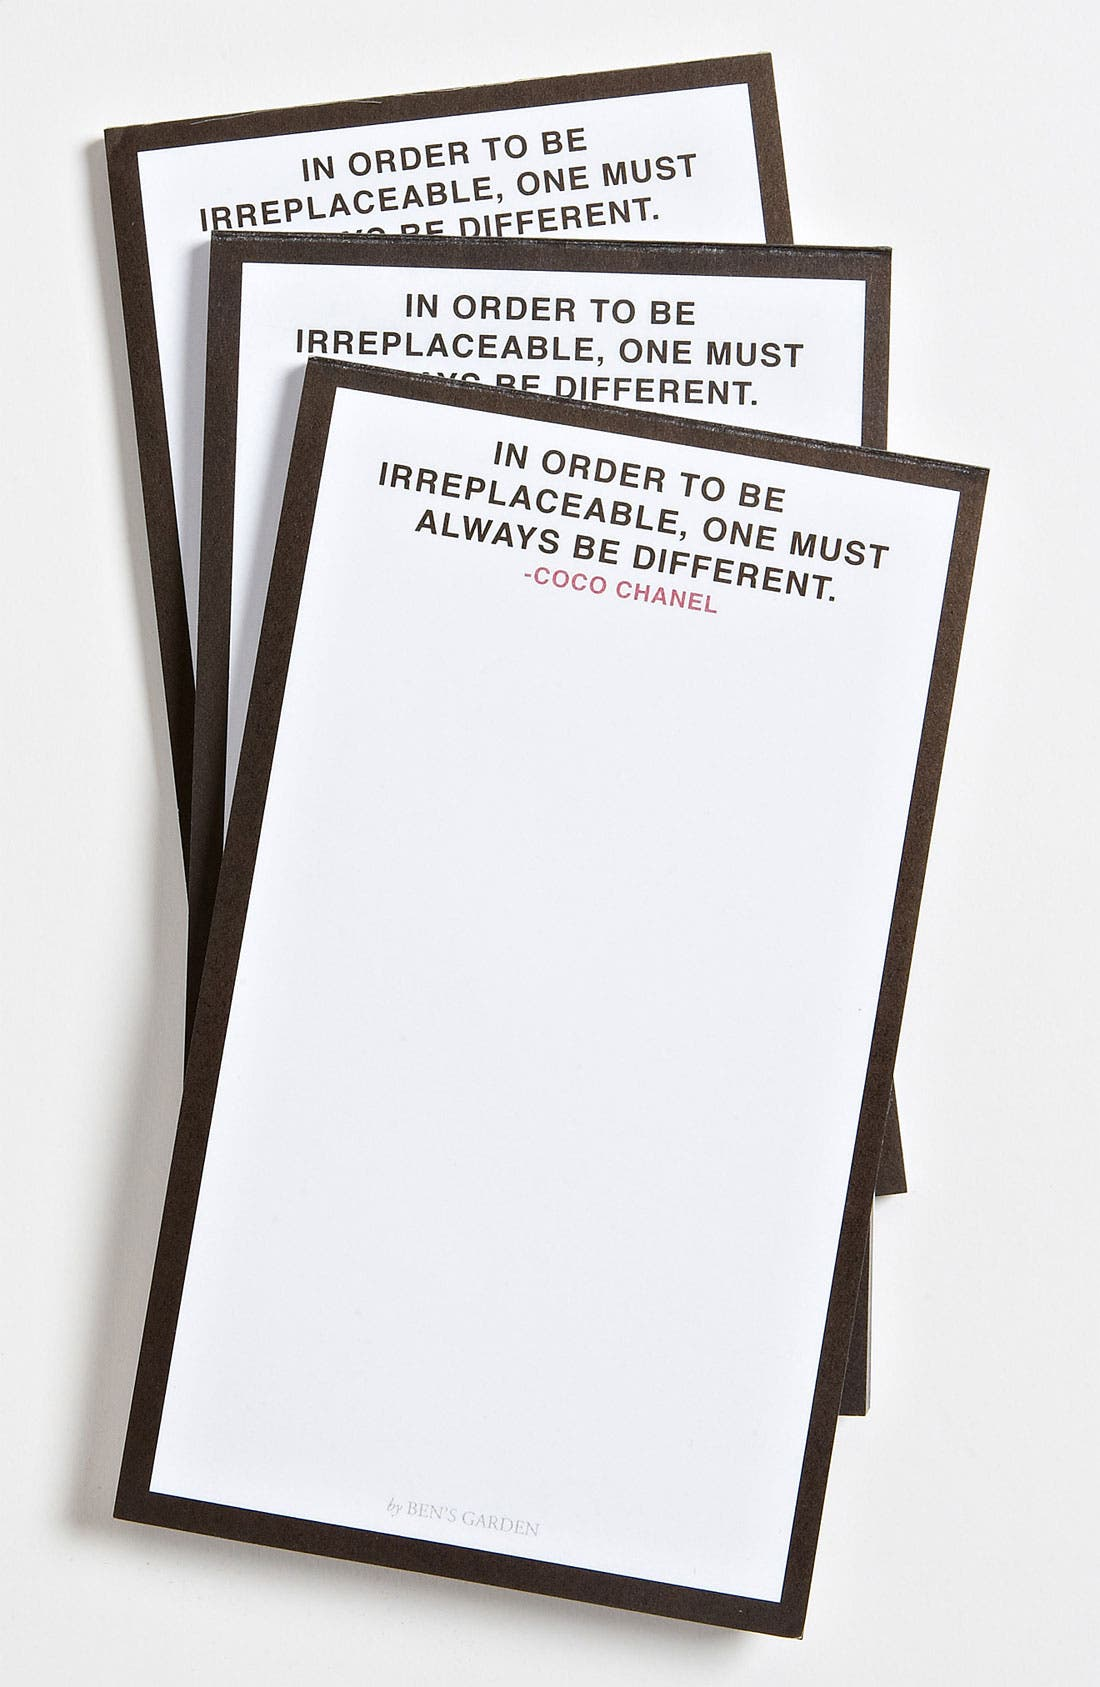 Alternate Image 1 Selected - Ben's Garden 'To Be Different' Notepads (3-Pack)